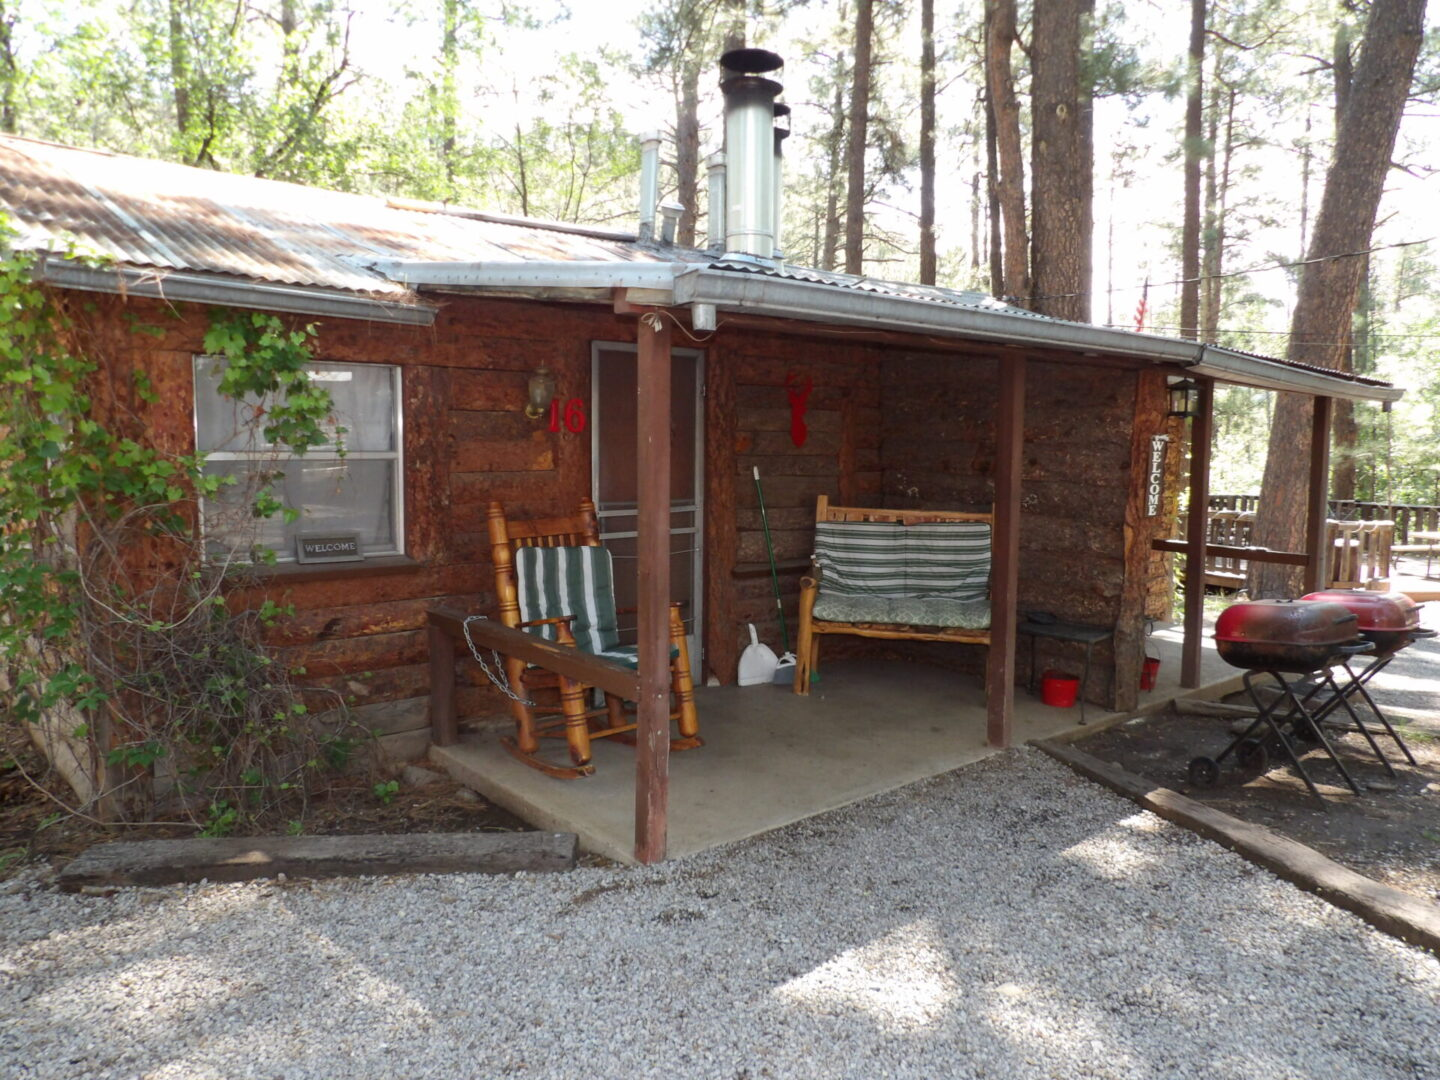 entrance to a cabin with chairs and grills